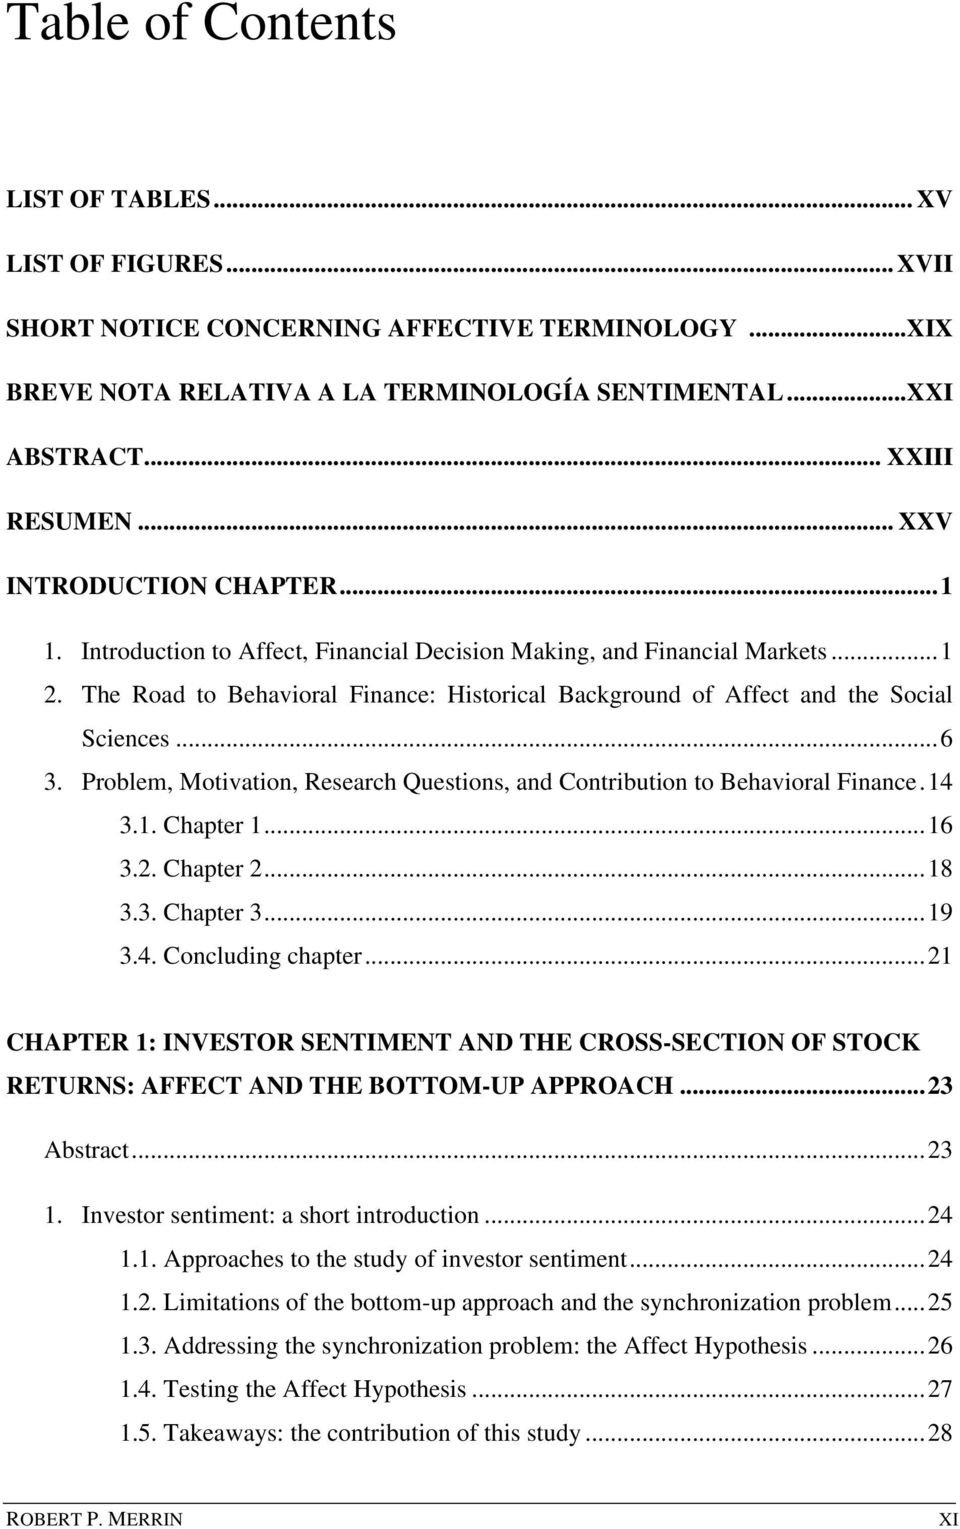 The Road to Behavioral Finance: Historical Background of Affect and the Social Sciences... 6 3. Problem, Motivation, Research Questions, and Contribution to Behavioral Finance. 14 3.1. Chapter 1.